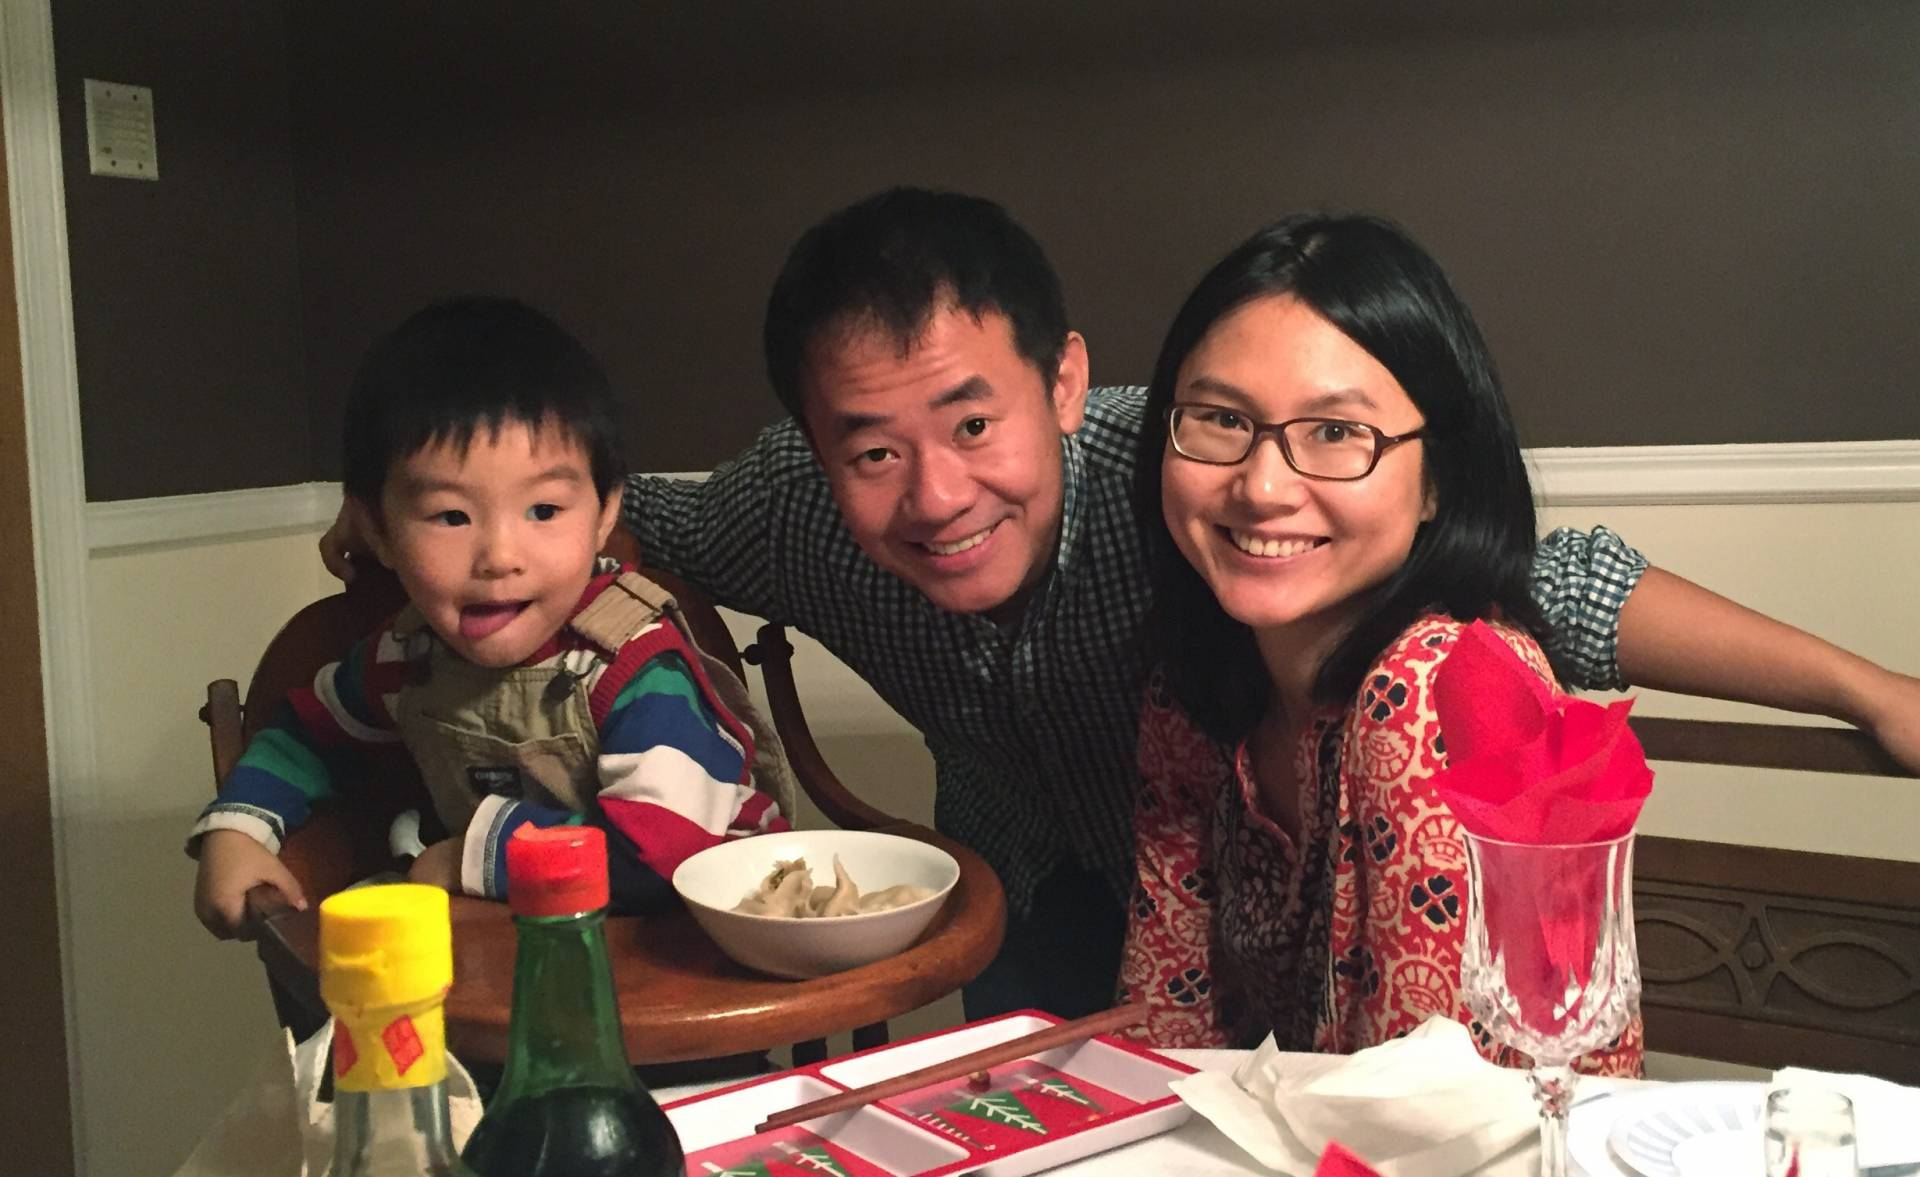 Xiyue Wang, Hua Qu and their son seated at a table